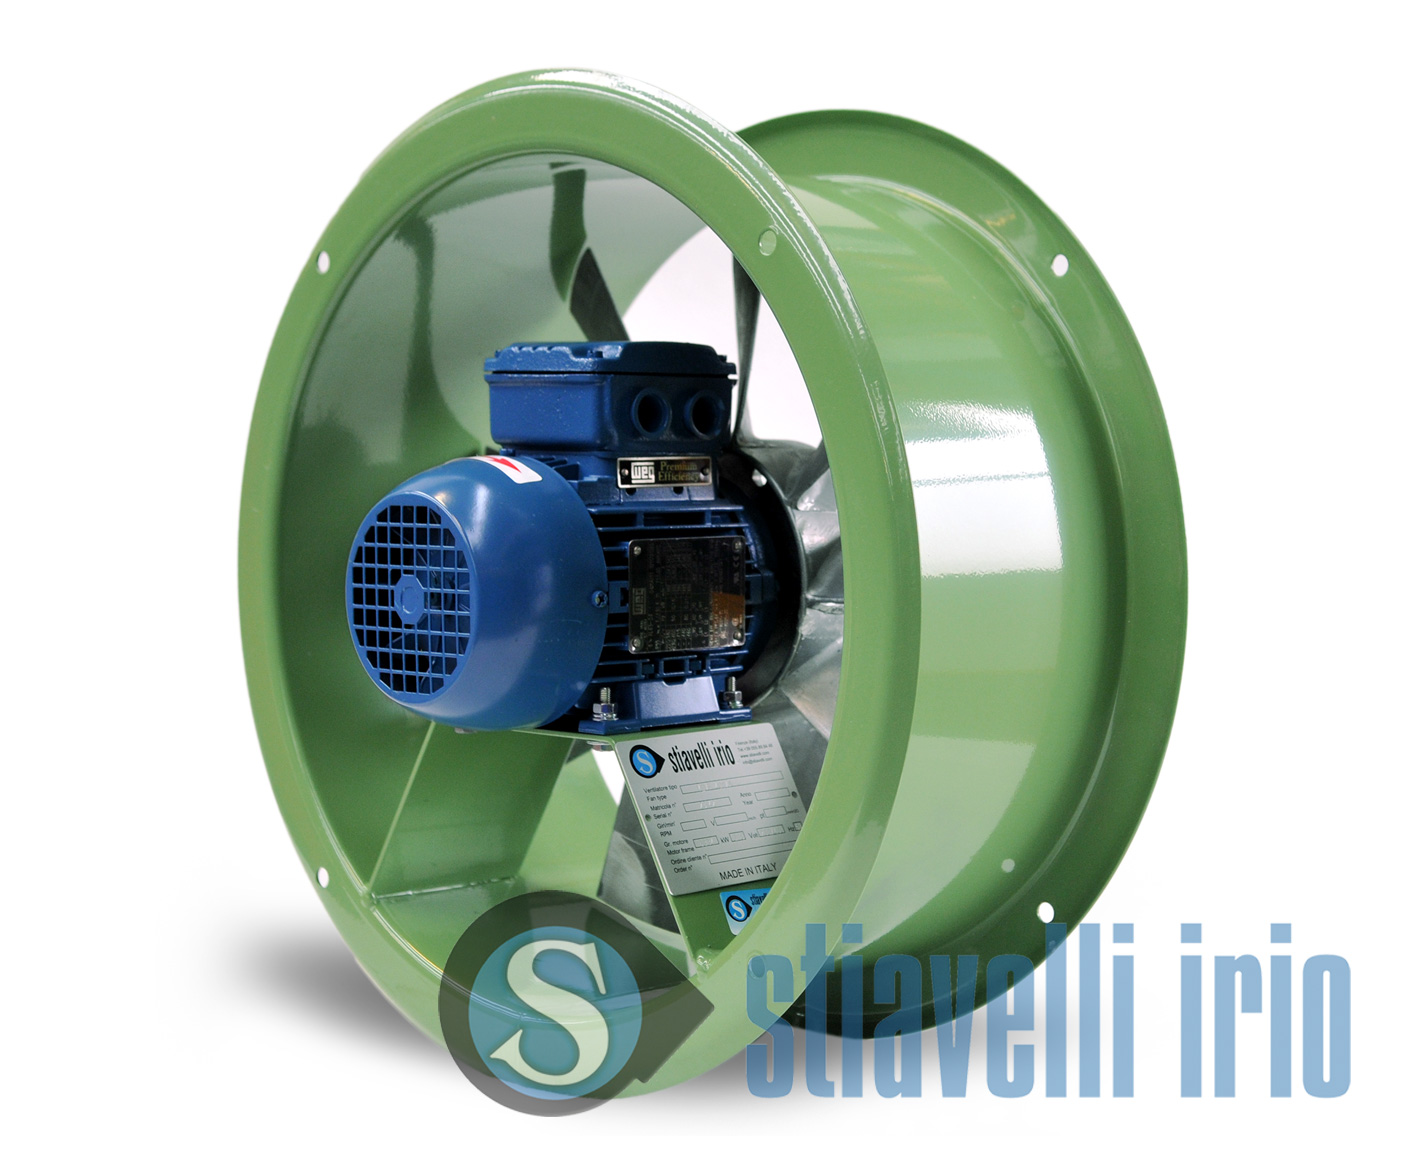 Yevf Industrial Axial Ducted Fans Stiavelli Irio Srl